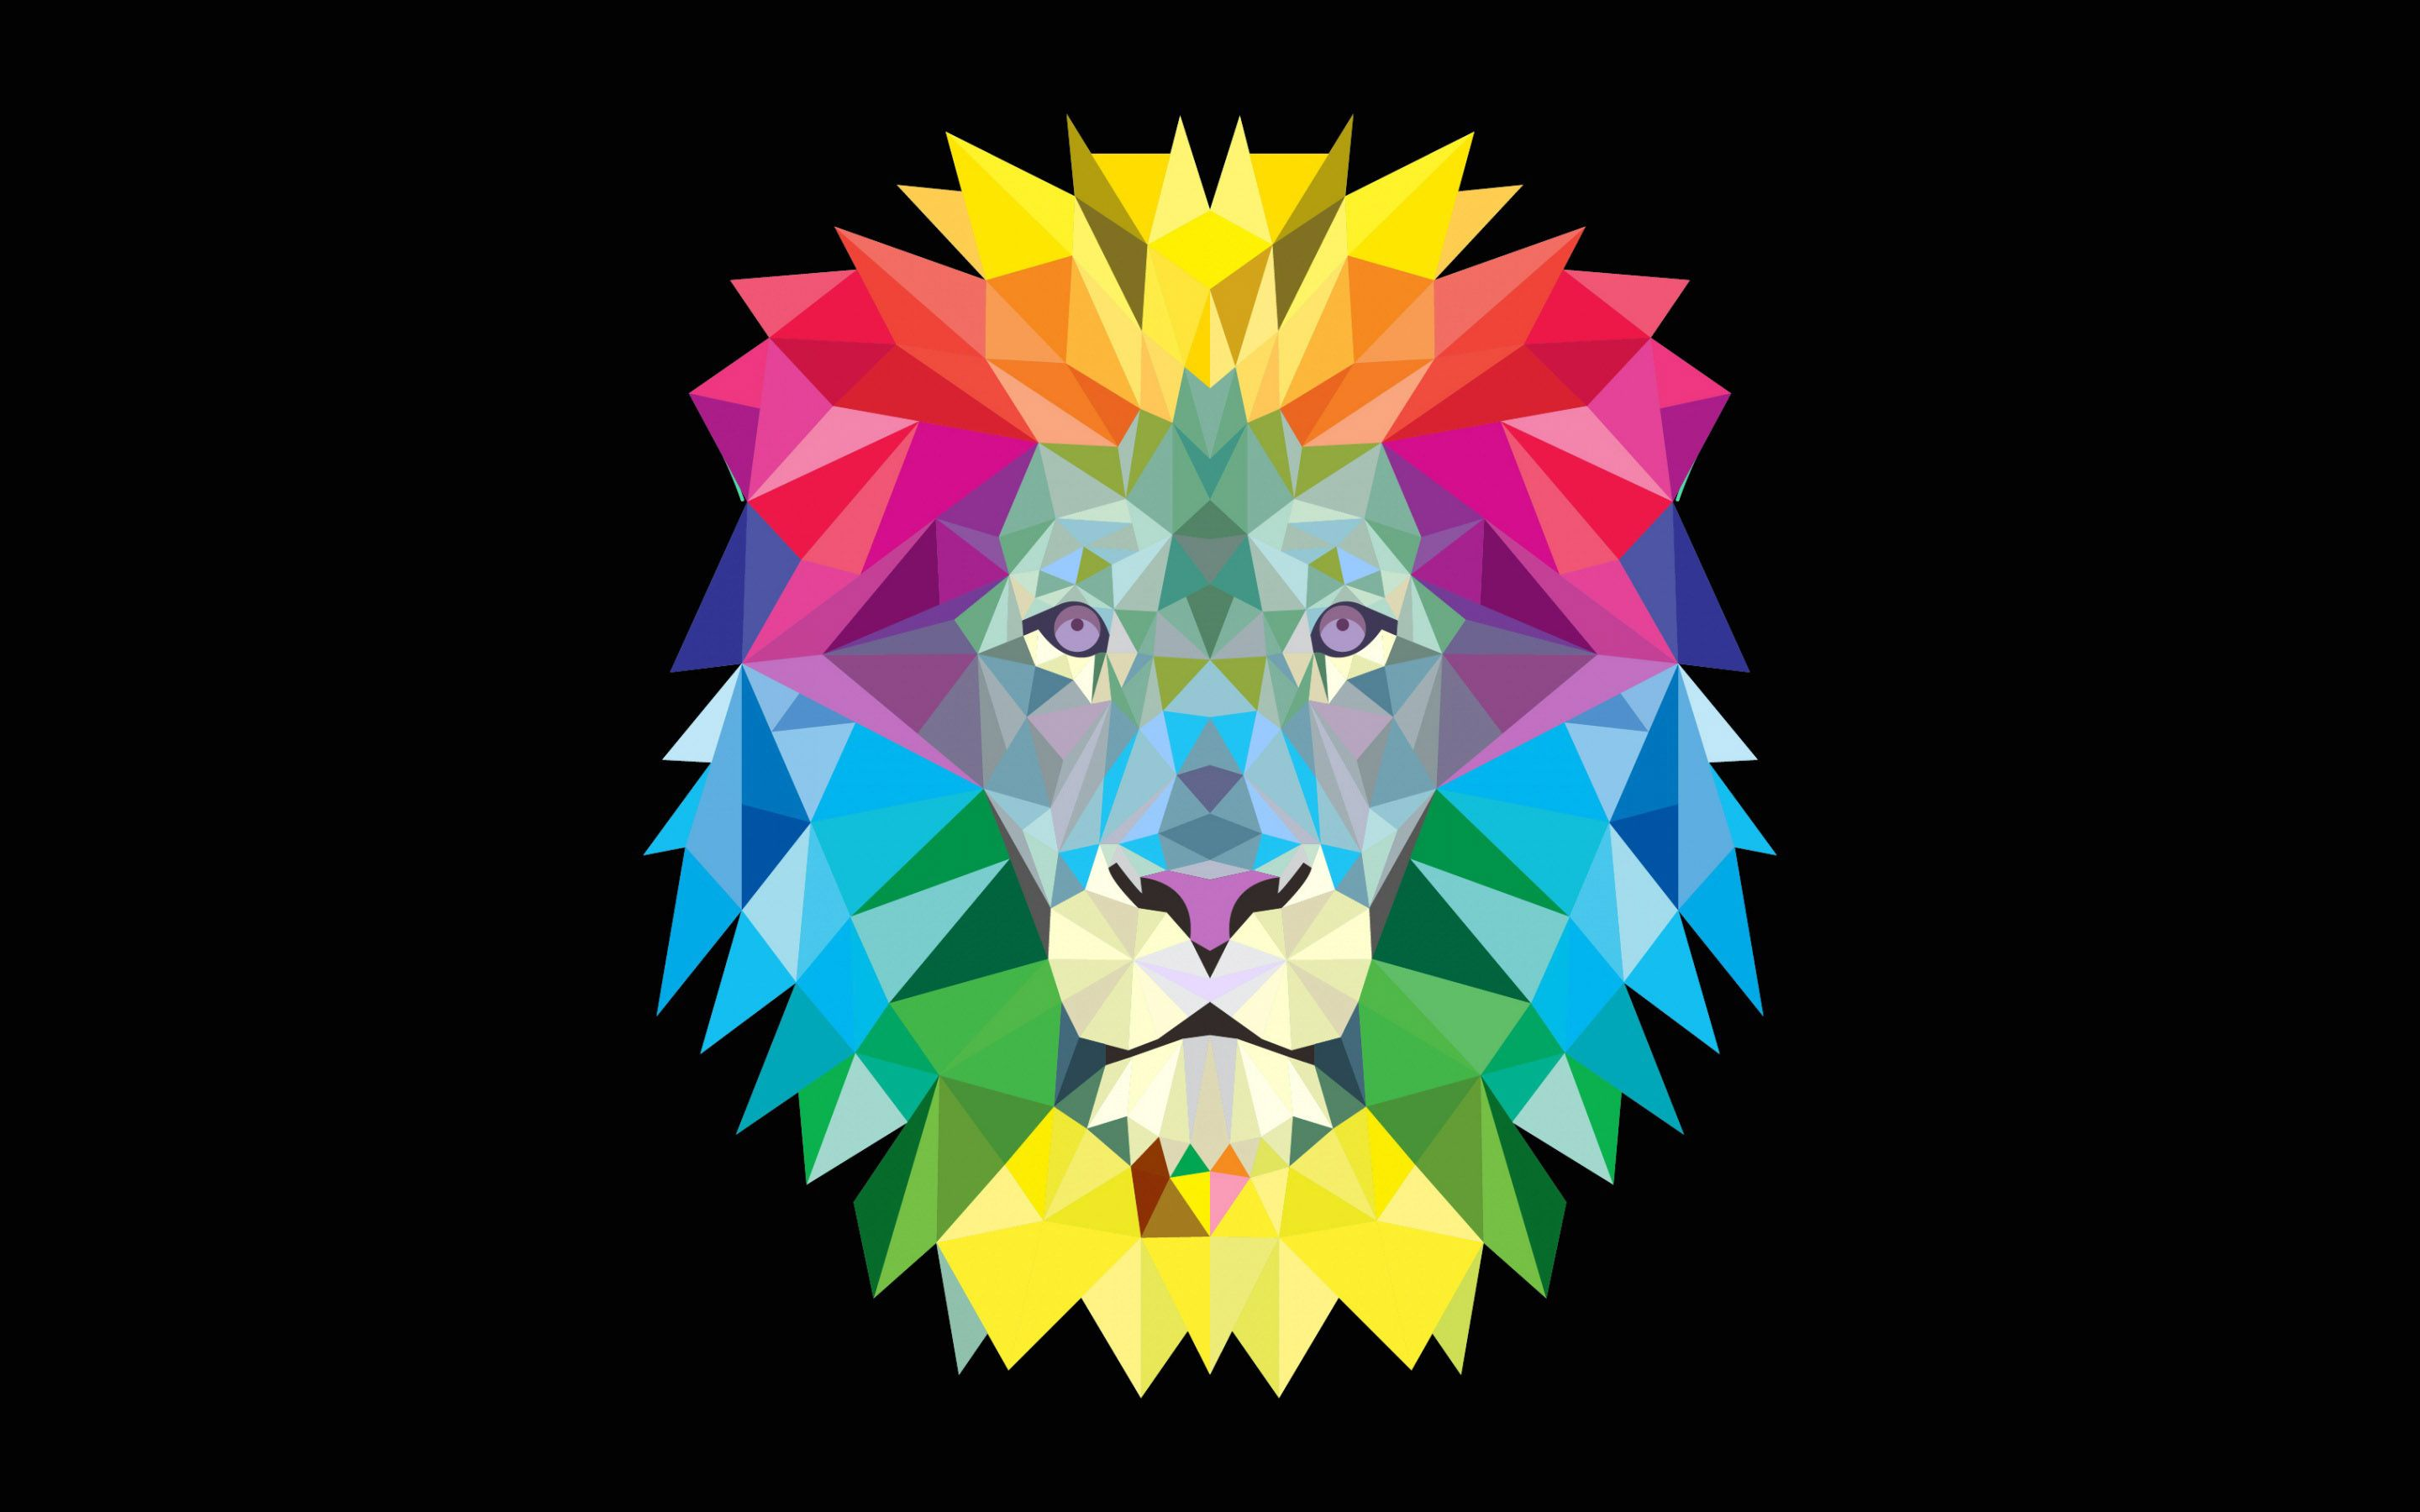 Good Wallpaper Logo Lion - 409127af992b8a1cff75fc4d0222f4c9  Graphic_355865.jpg